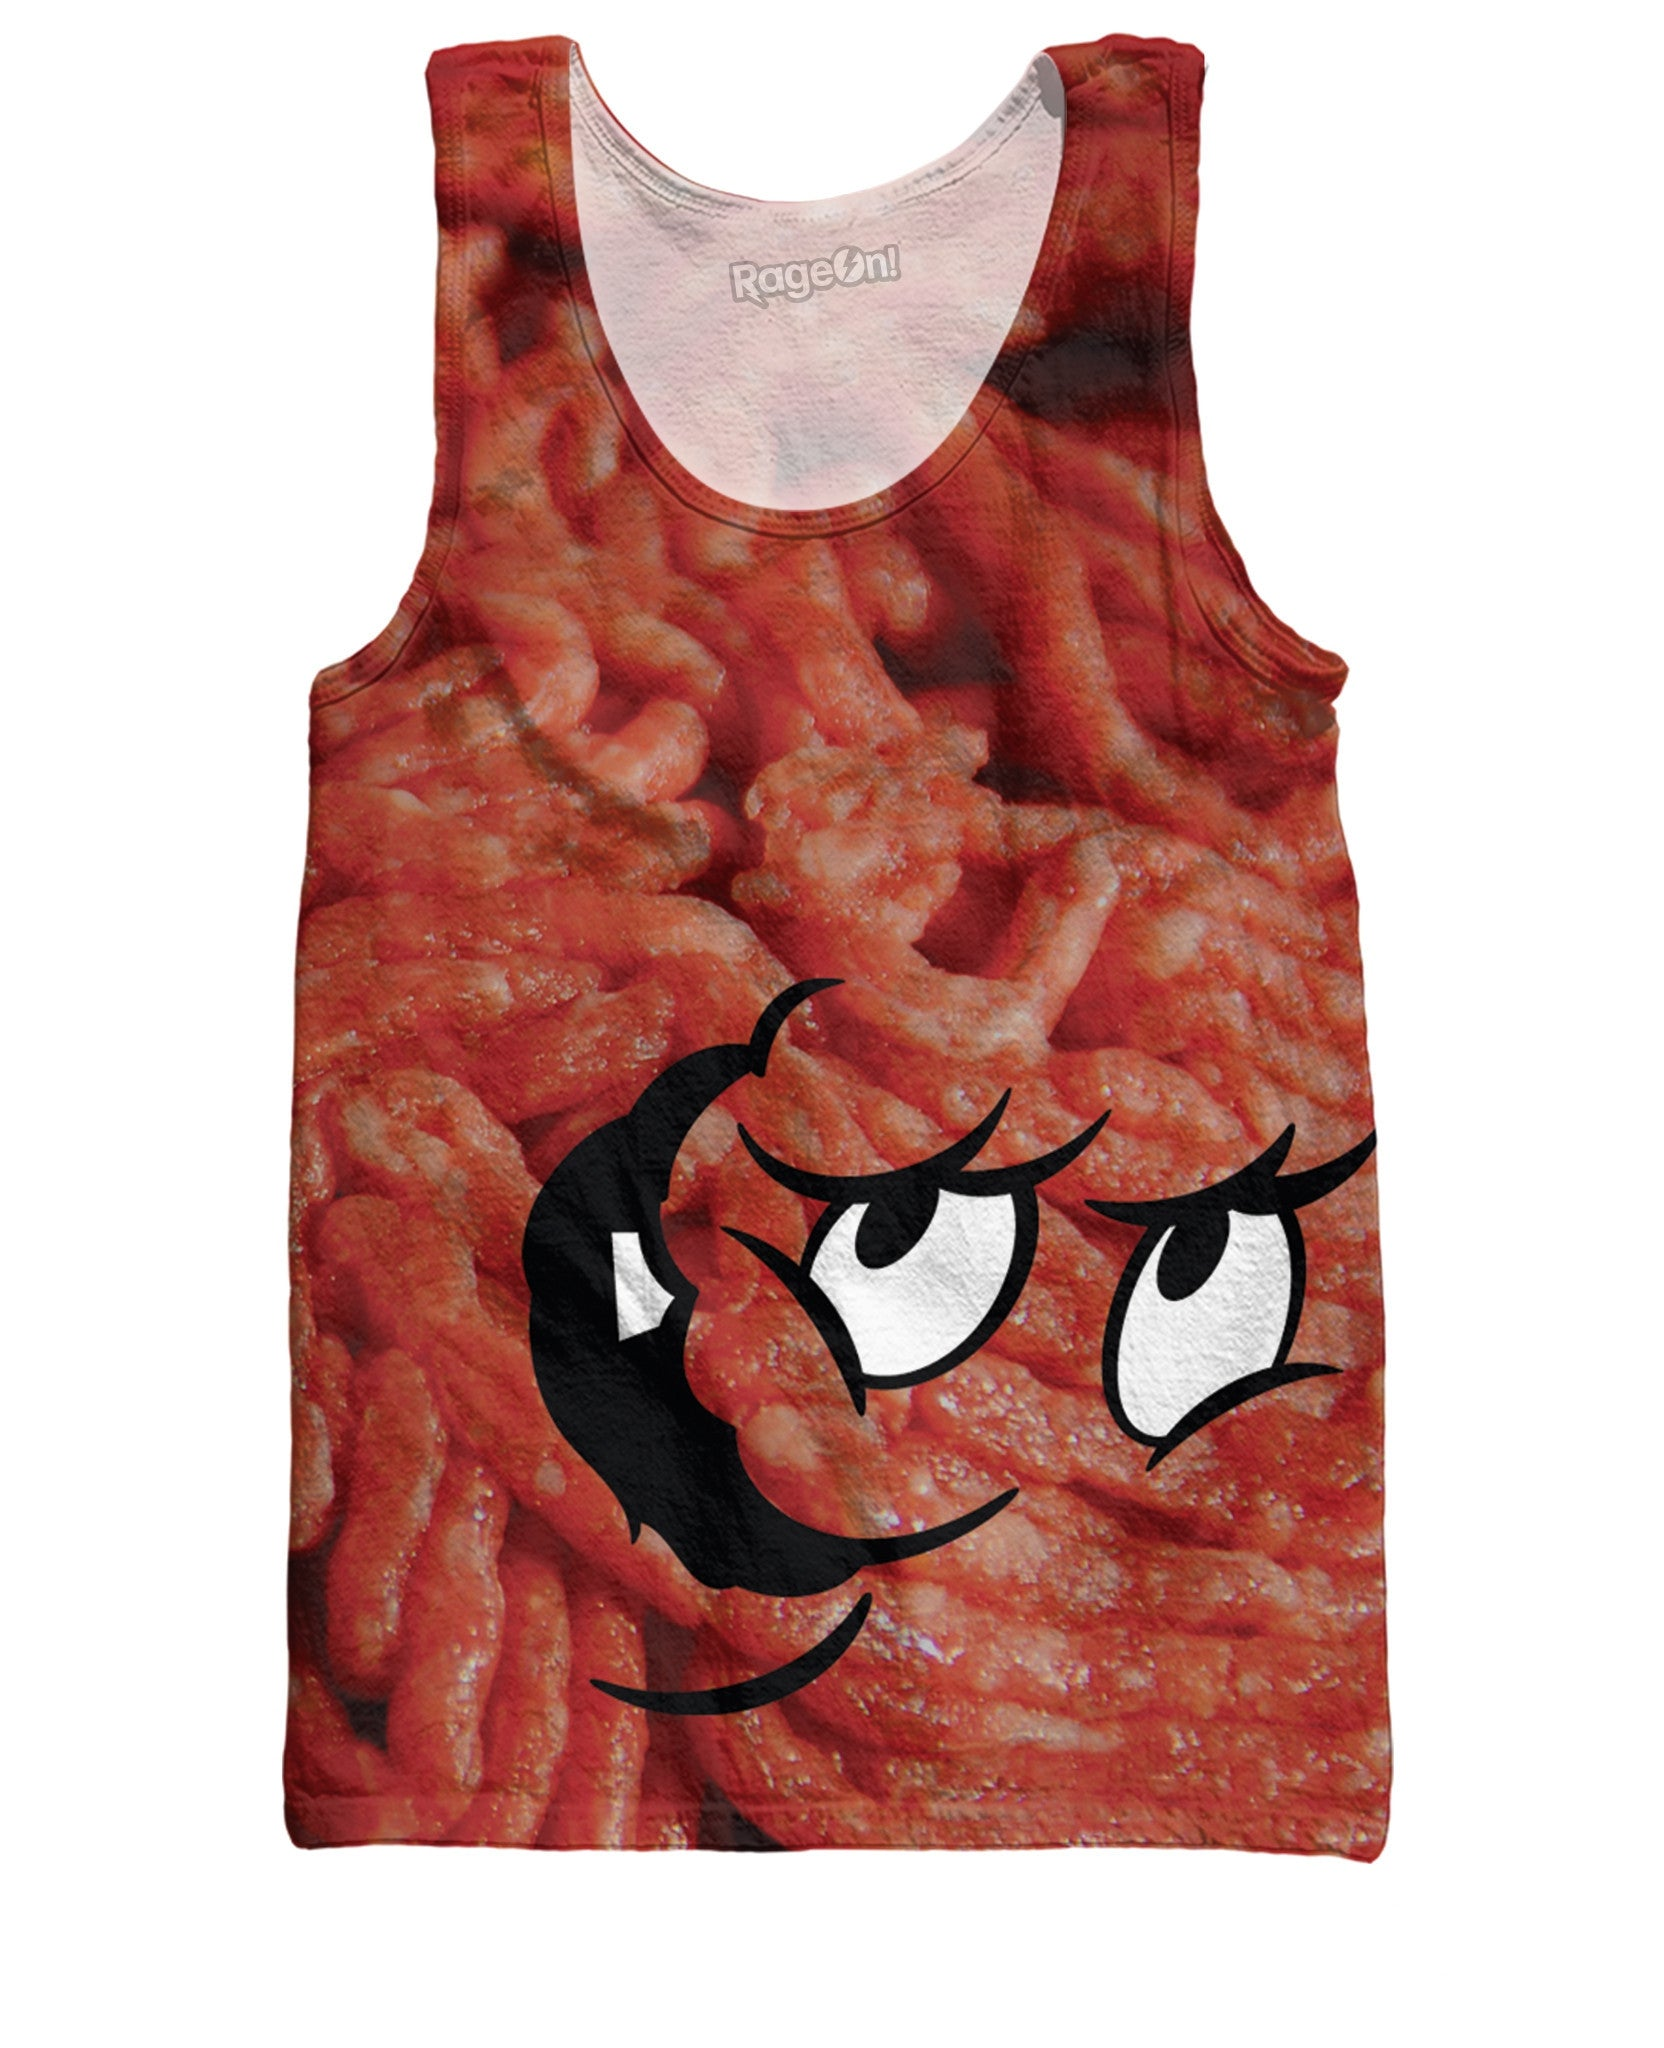 Meatwad Tank Top